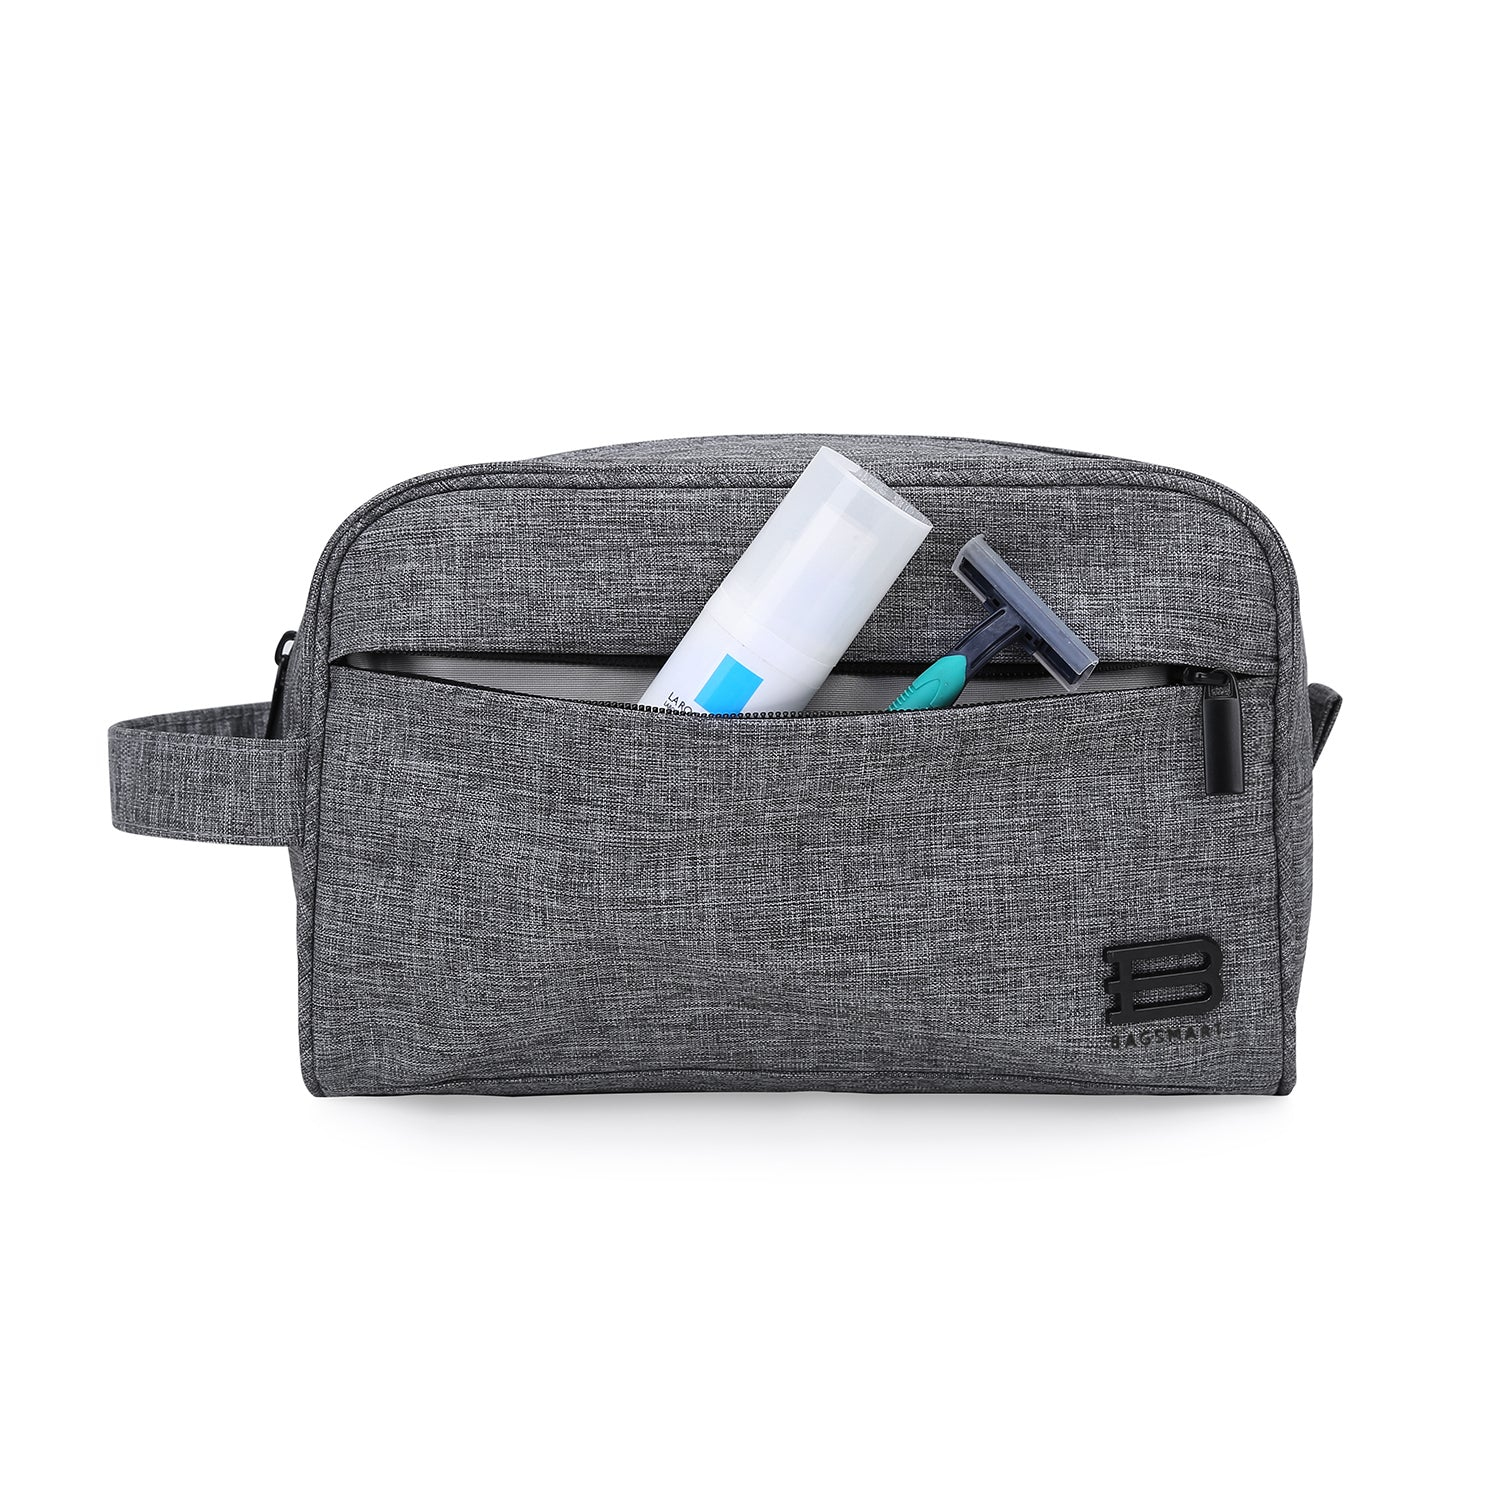 cf134584ce12 Compact Waterproof Toiletry Travel Bag Organizer Handy Makeup Cosmetic Bag  Carry on Dopp Shaving Kit for